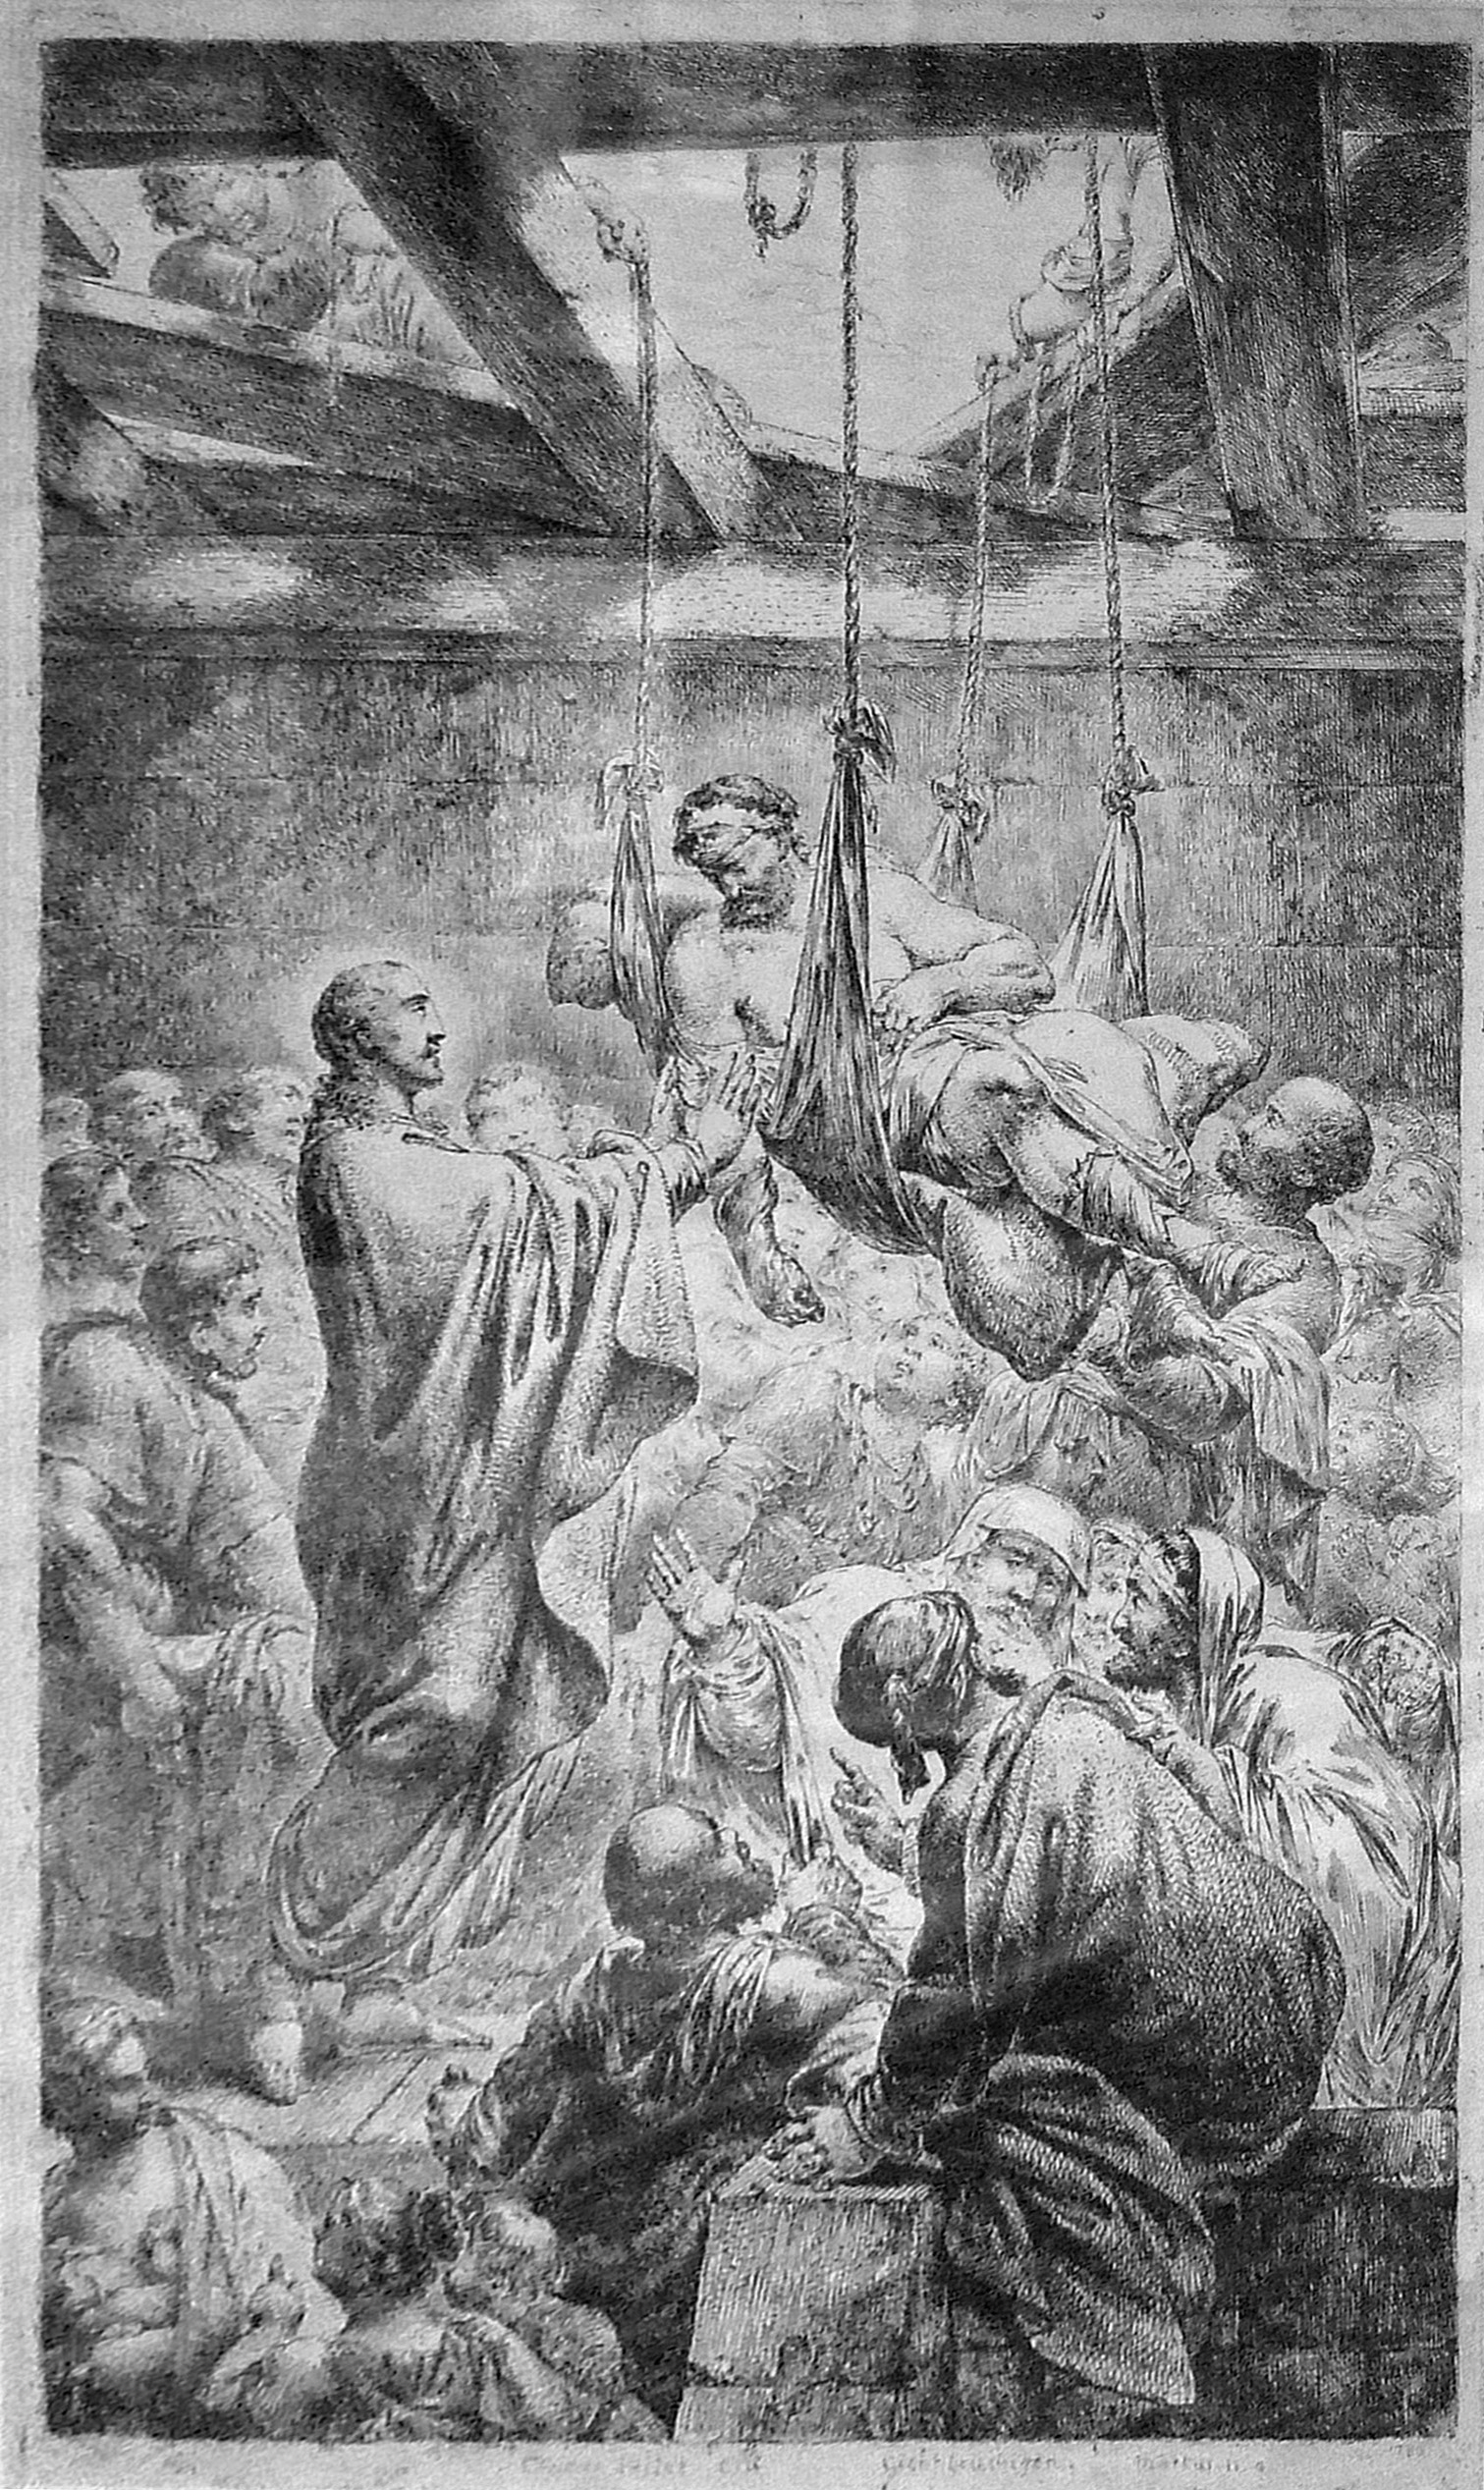 Engraving of Jesus healing paralyzed man